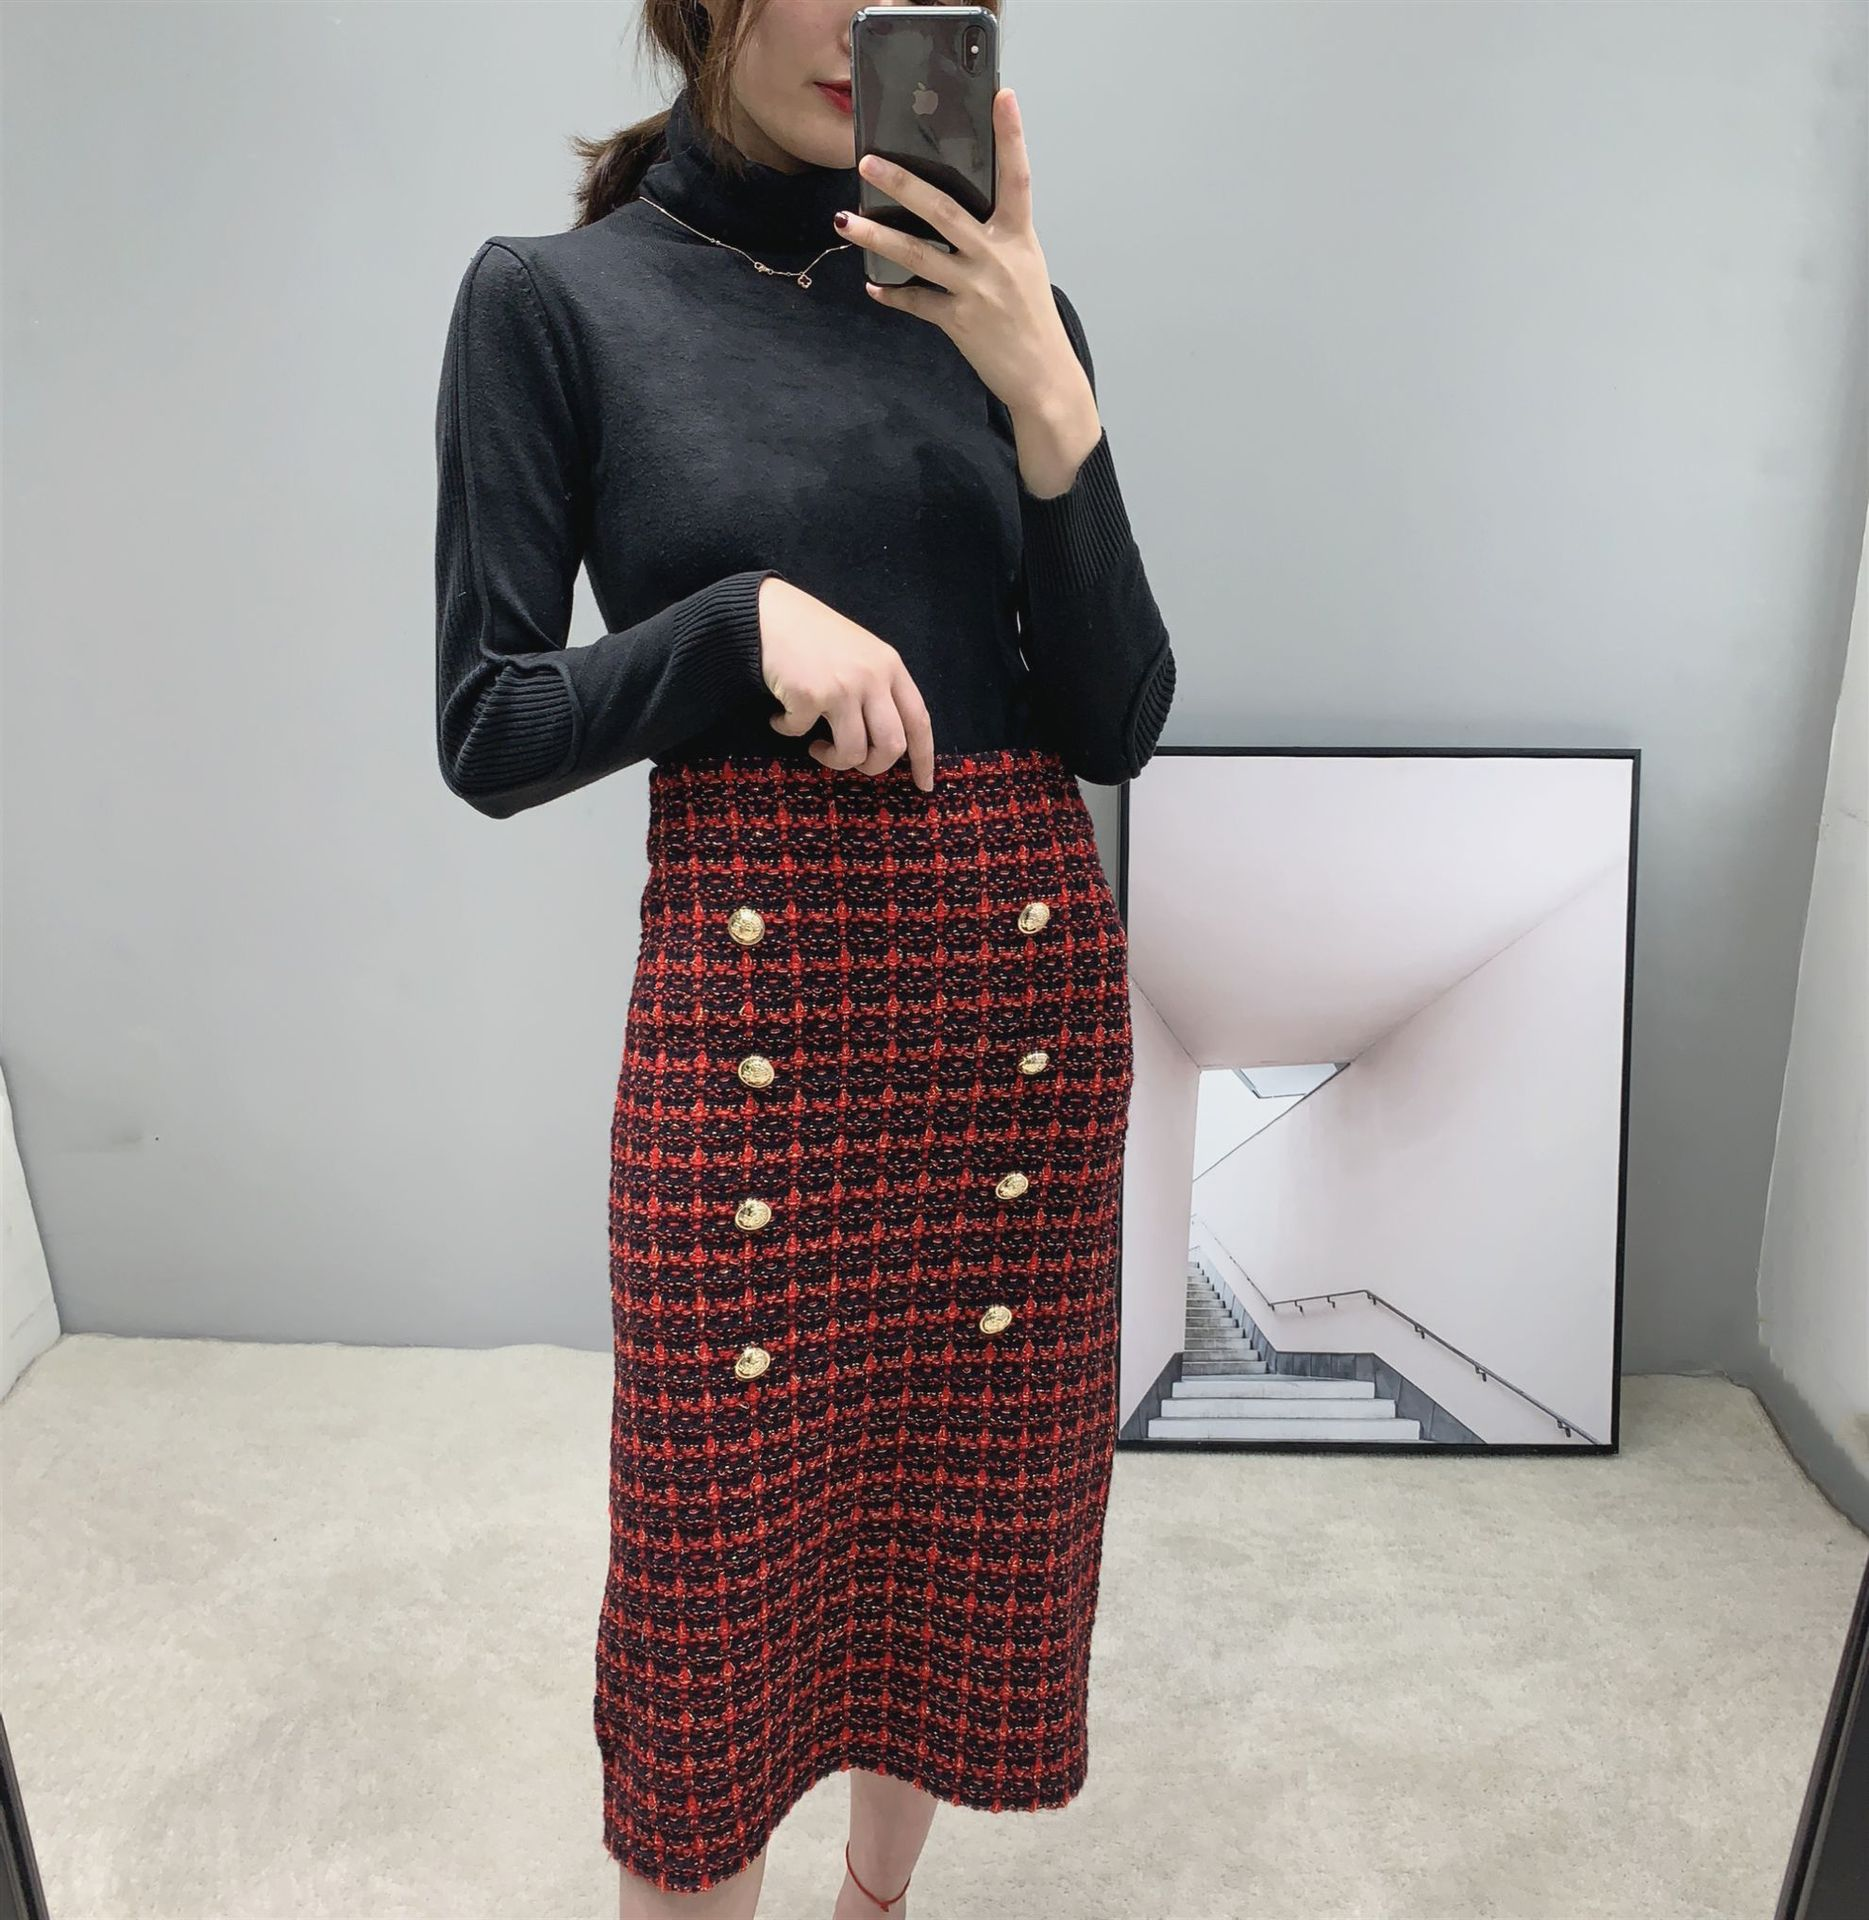 19 Spring autumn New tweed Women's skirt elegant Office Double Breasted plaid knitted Vintage Package Hip midi skirt Female 3